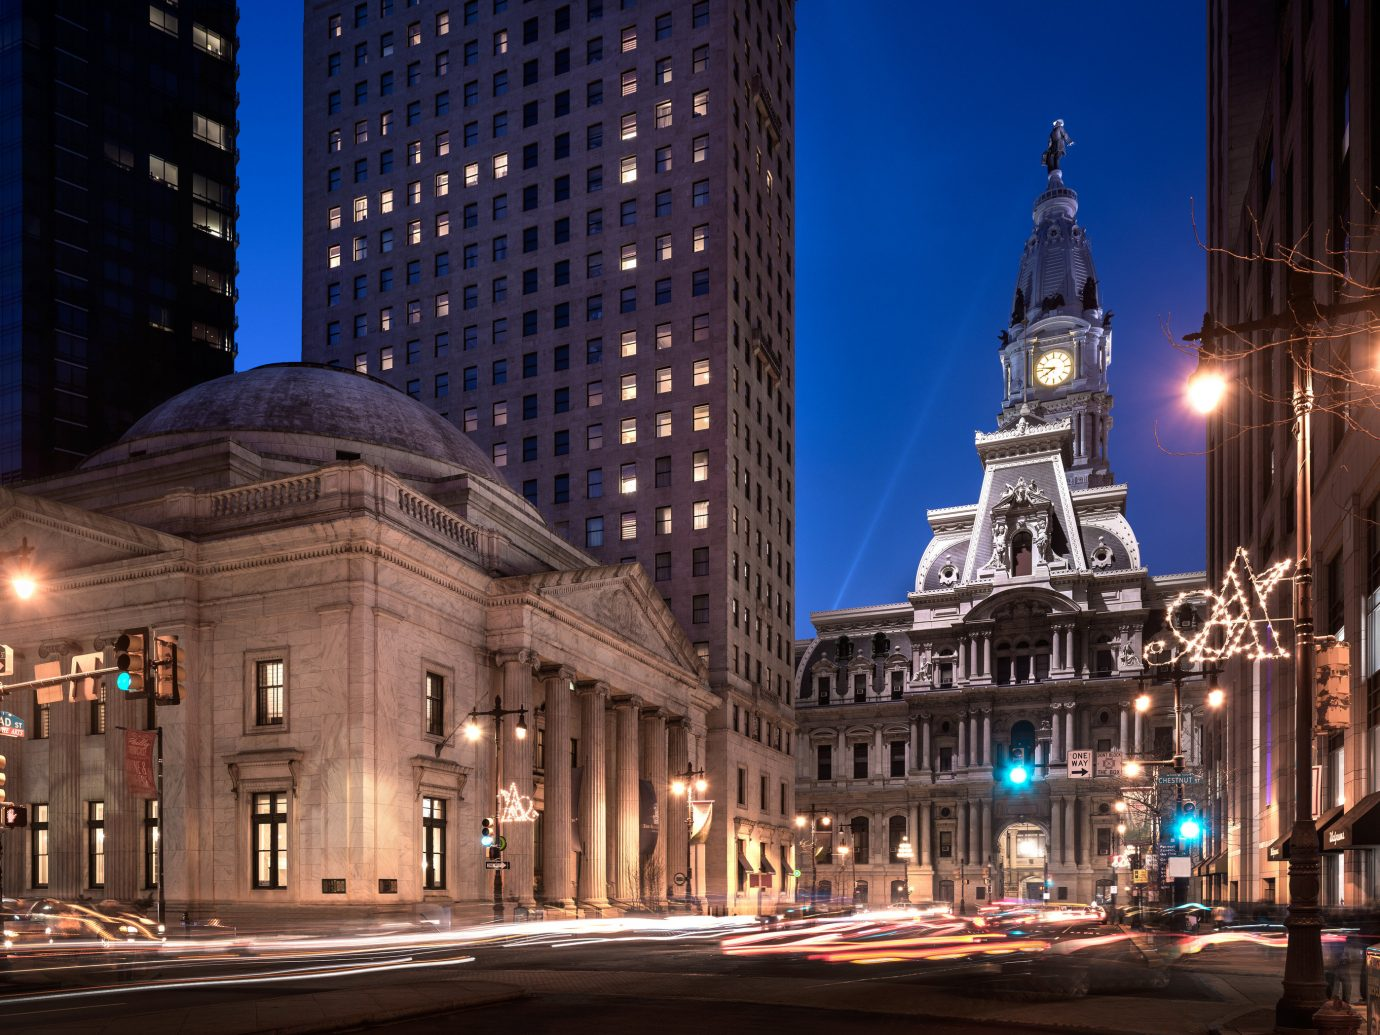 Boutique Hotels Hotels Philadelphia metropolitan area City metropolis landmark cityscape urban area skyscraper night Downtown infrastructure building Town sky Architecture light tourist attraction daytime lighting tower block tower town square evening street plaza skyline facade tree traffic